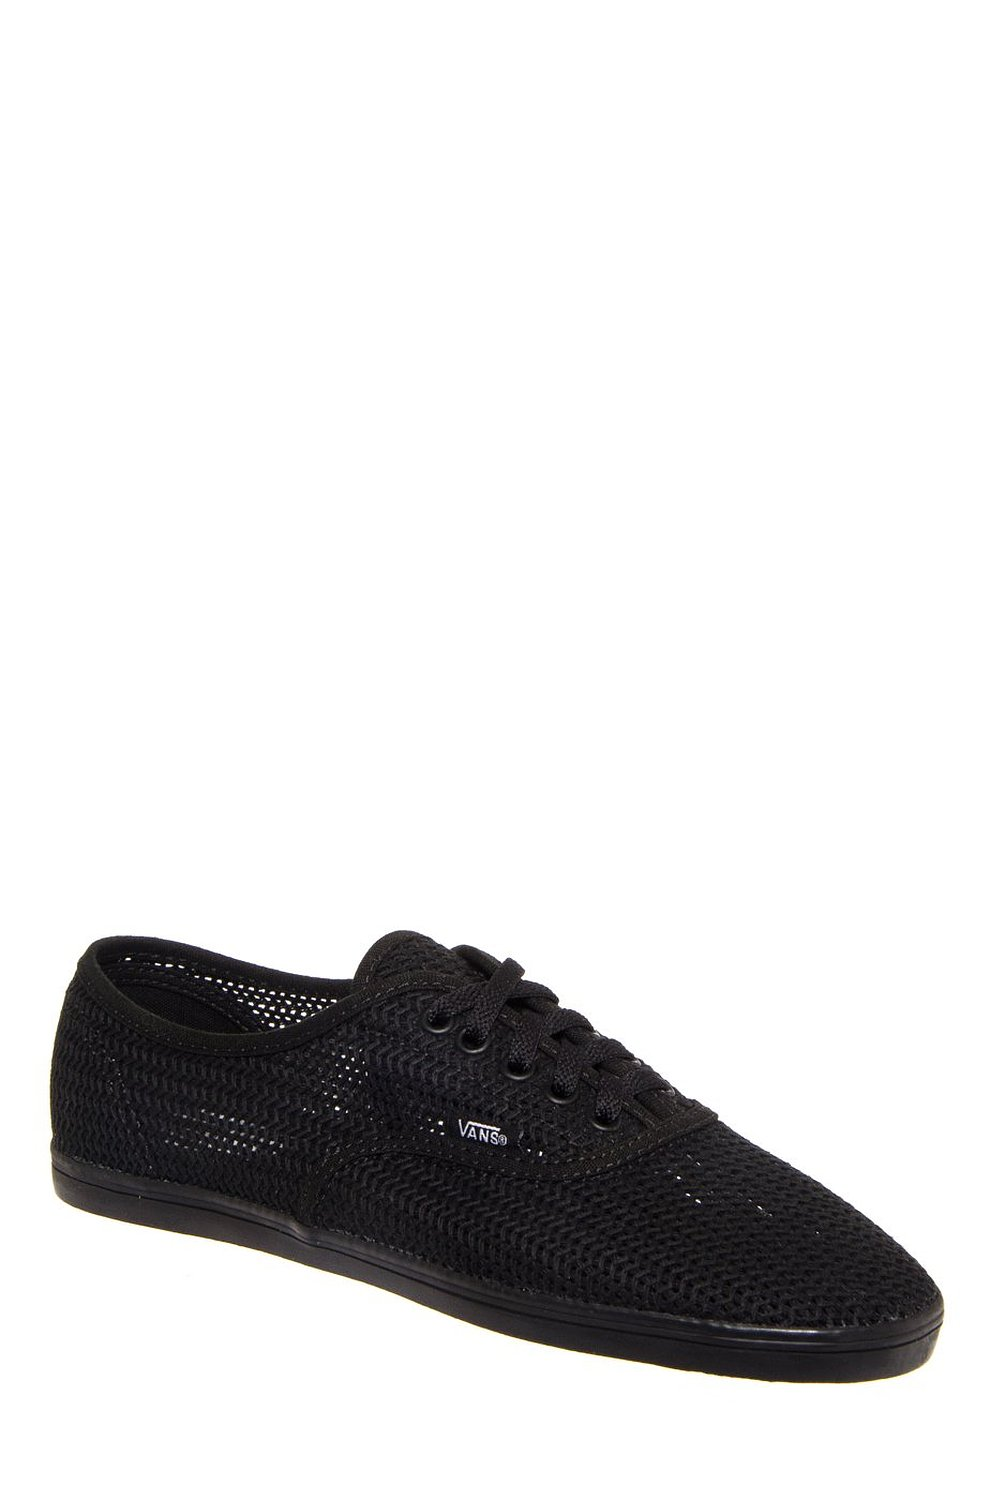 6e4793d498fae Amazon.com: Vans Unisex Ynez Binding Mesh Sneaker - Black: Shoes